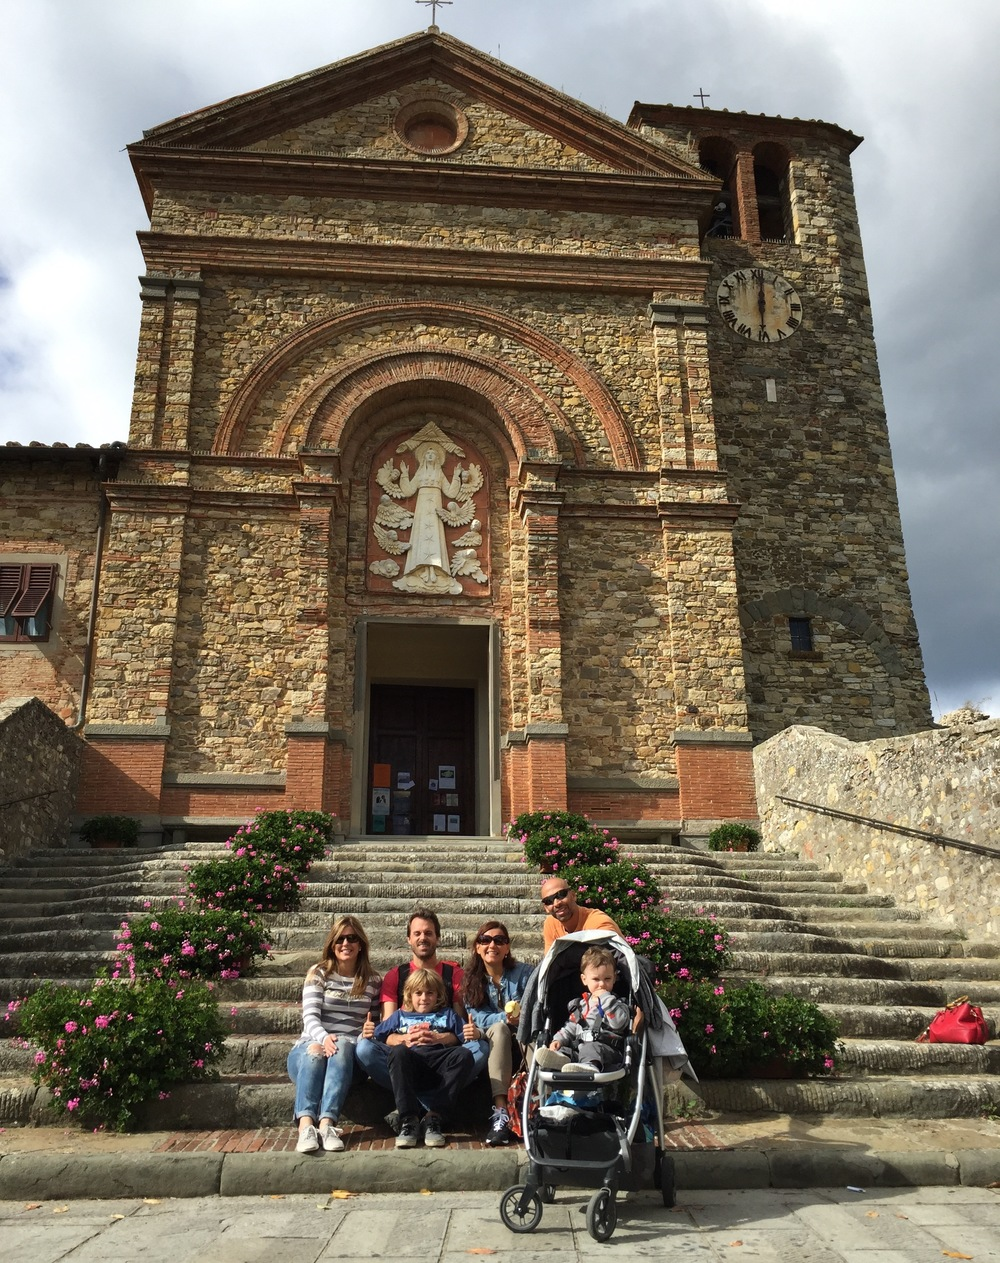 Frontside of Santa Maria Assunta's Church in Panzano. Photo: Marco Dettling (with self-timer).